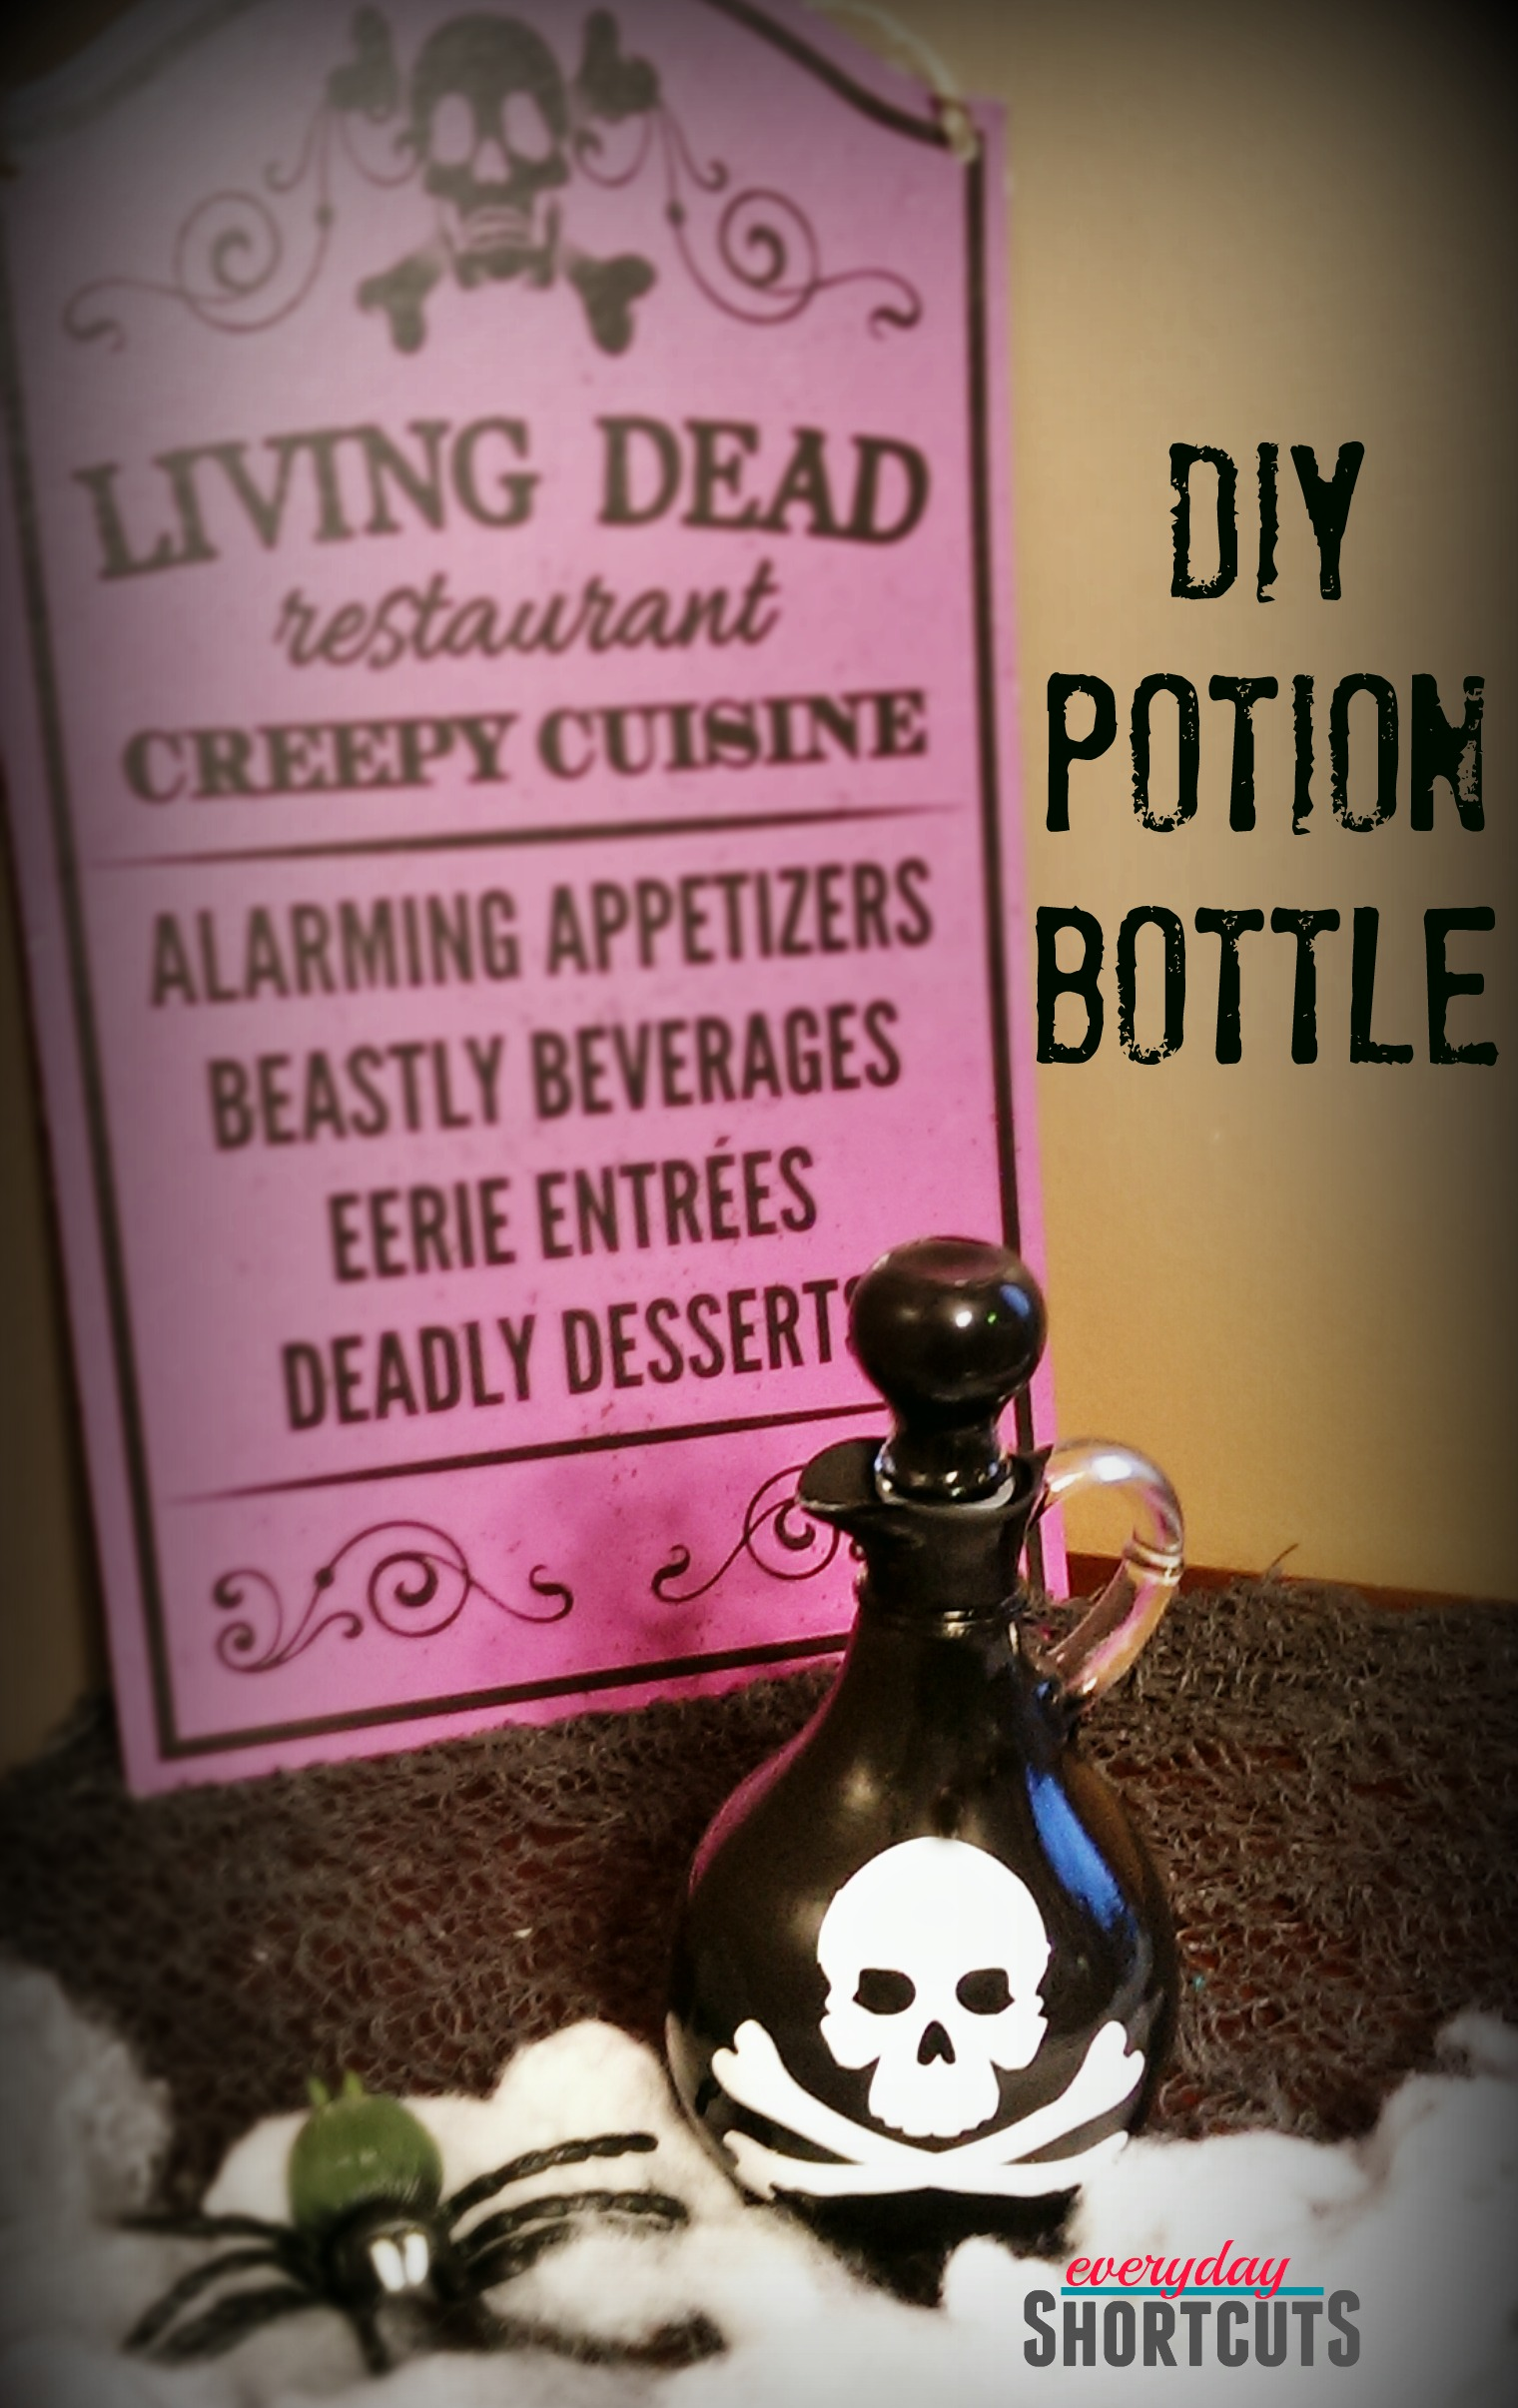 diy potion bottle